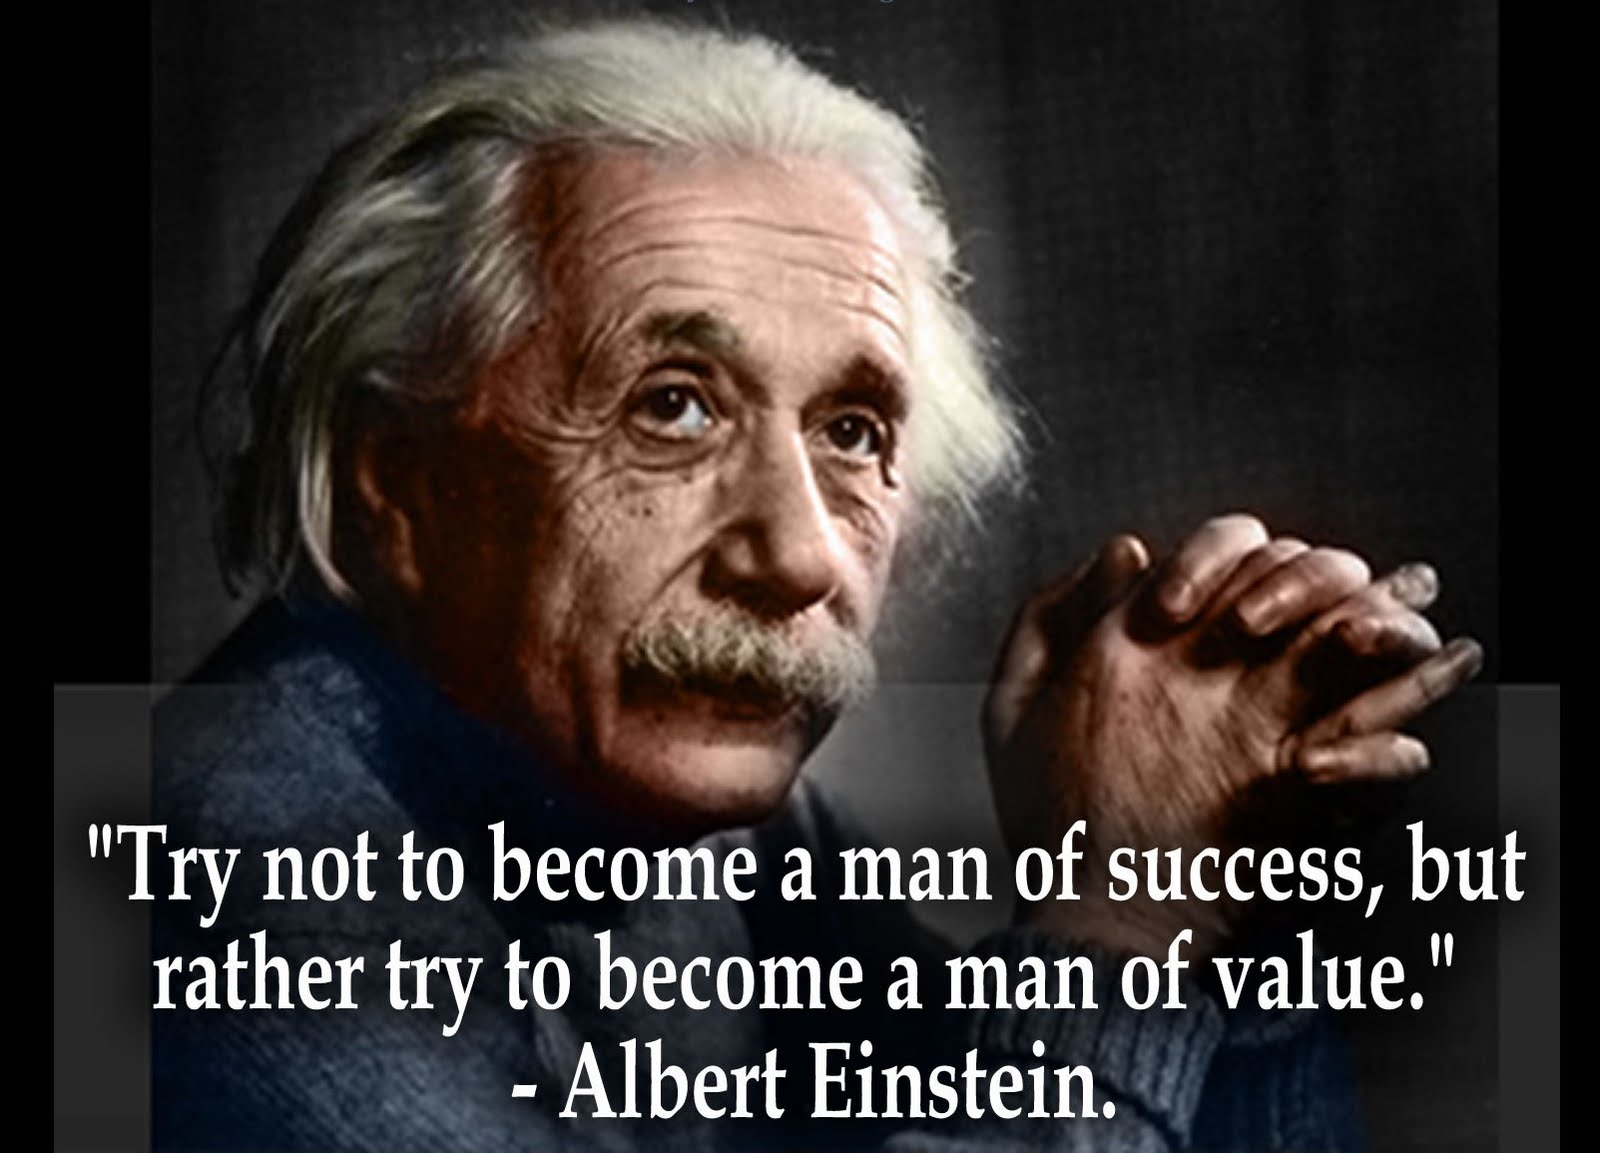 http://2.bp.blogspot.com/_yPIZJztu1UM/TIIujLk9MvI/AAAAAAAAAII/TRvgxGZCapI/s1600/albert-einstein-success-value-large.jpg